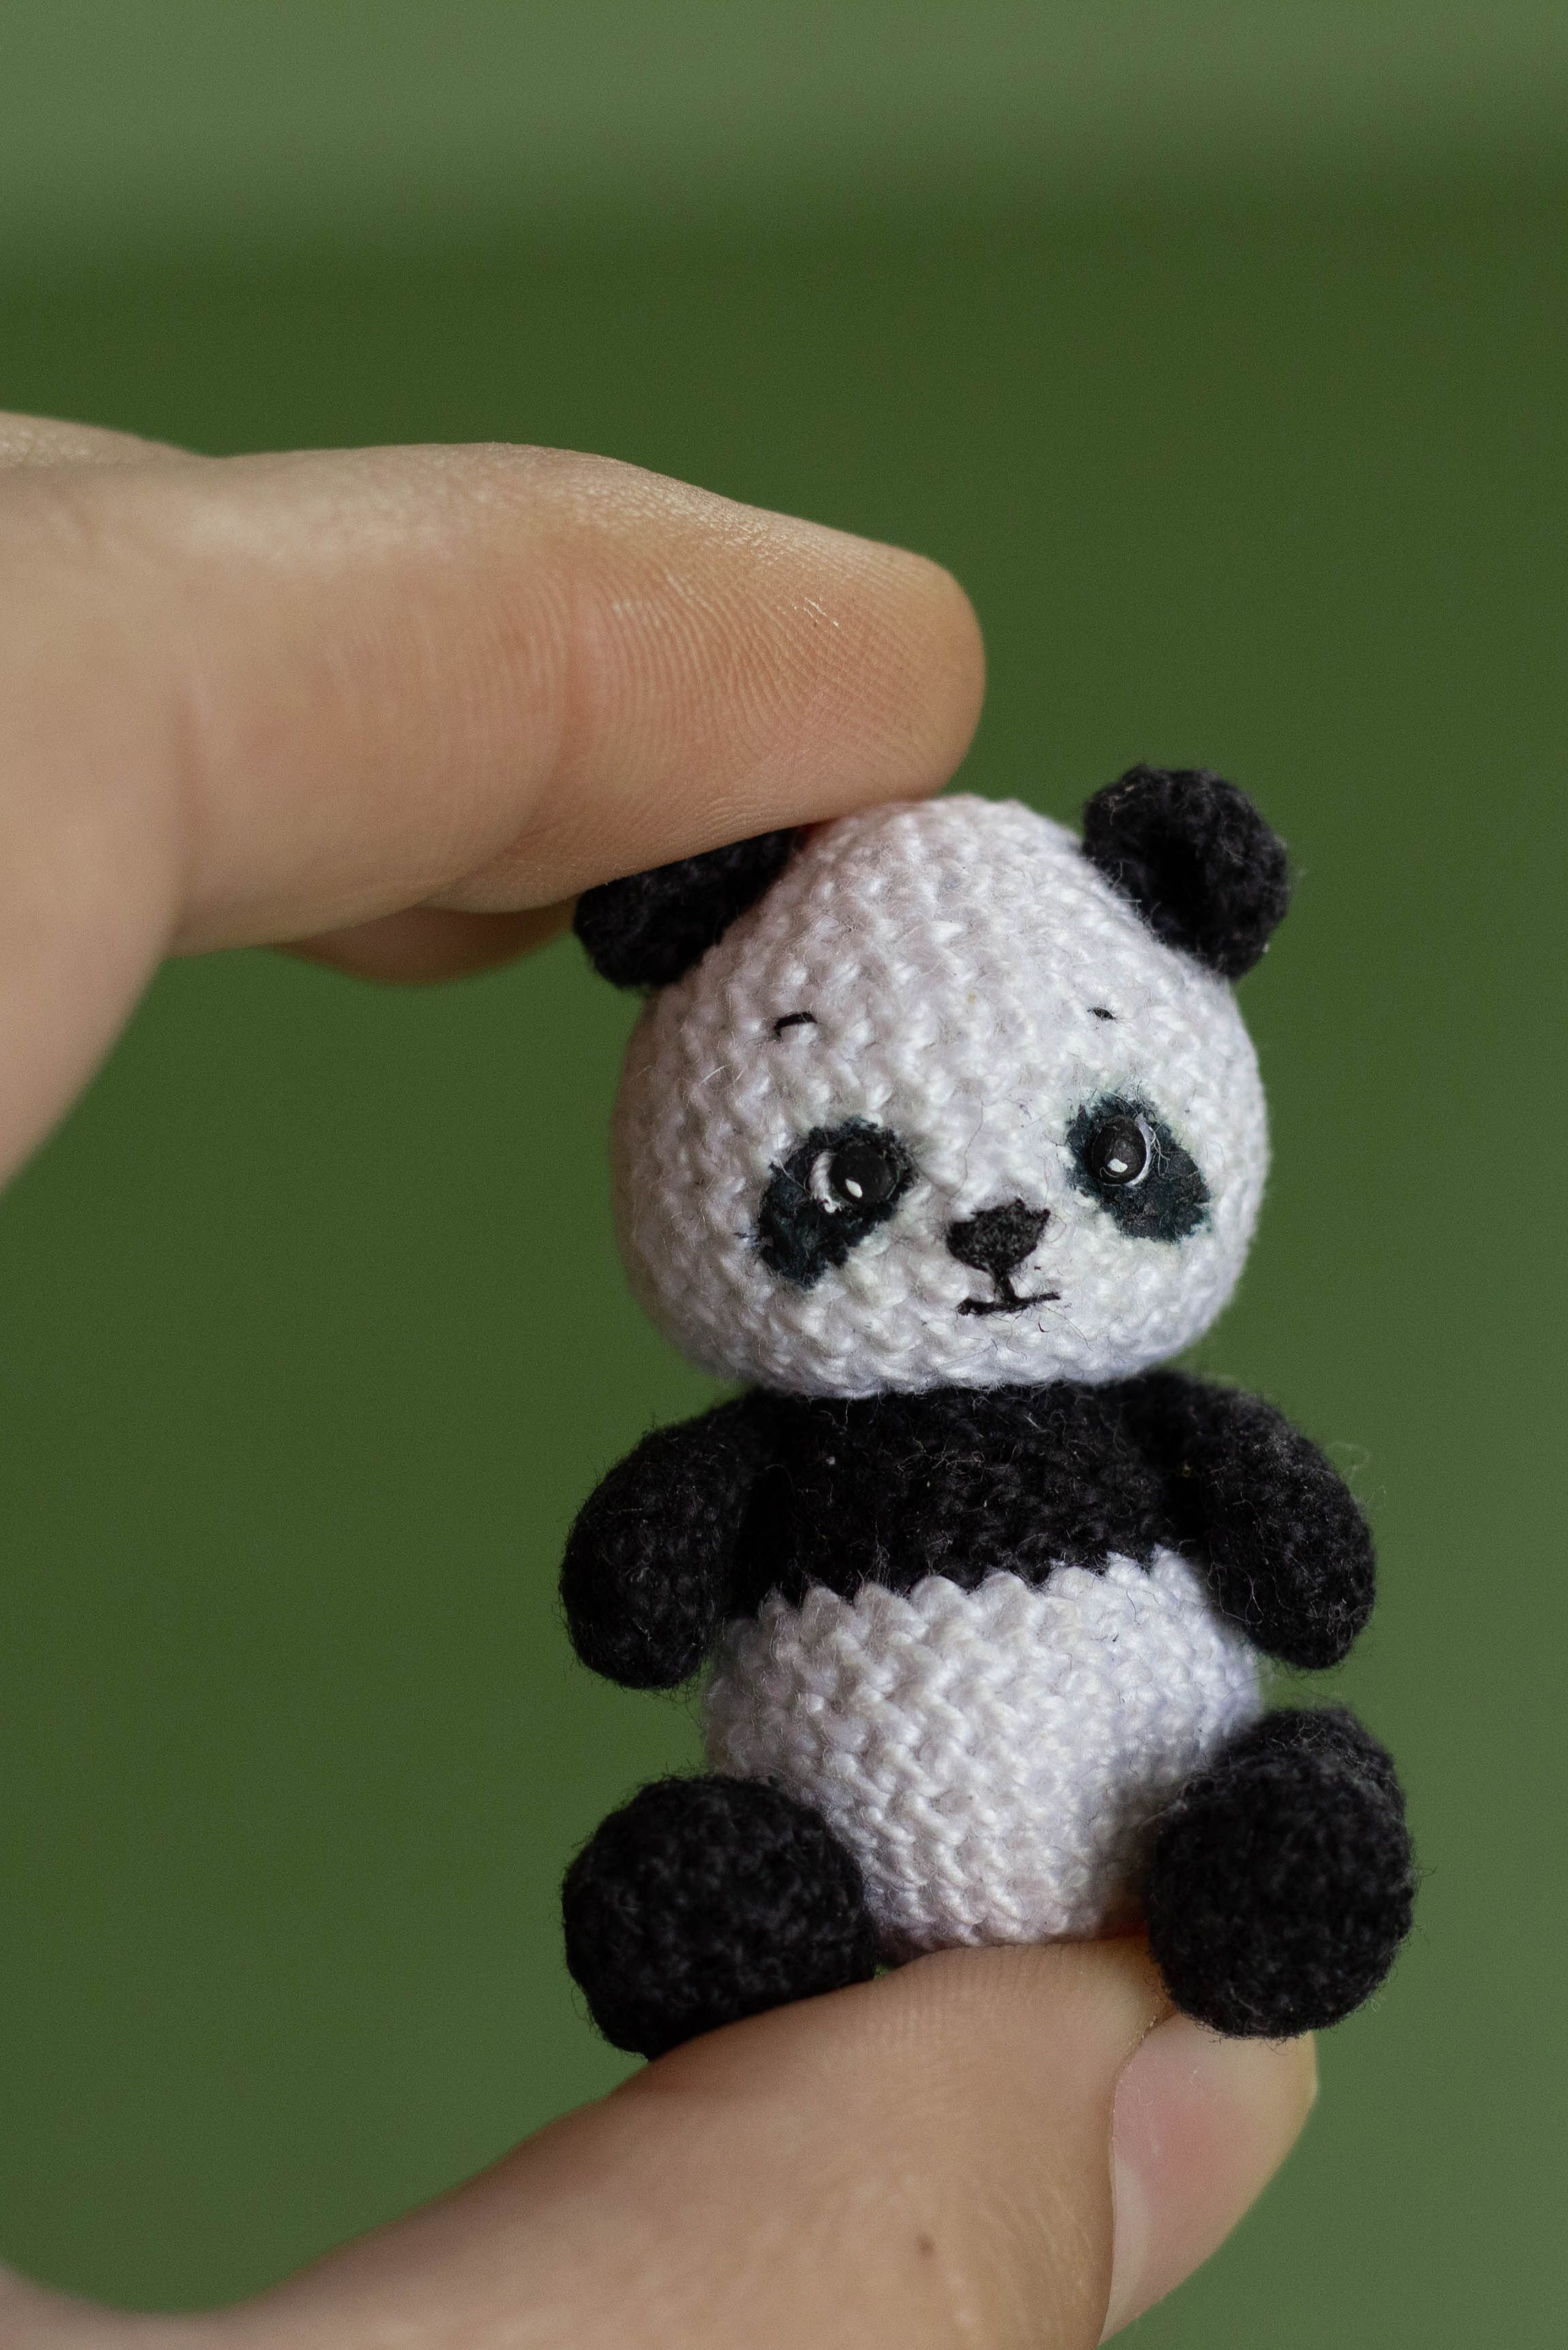 9 Crochet Panda Patterns – Cute Amigurumi Bear Toys - A More ... | 3456x2306